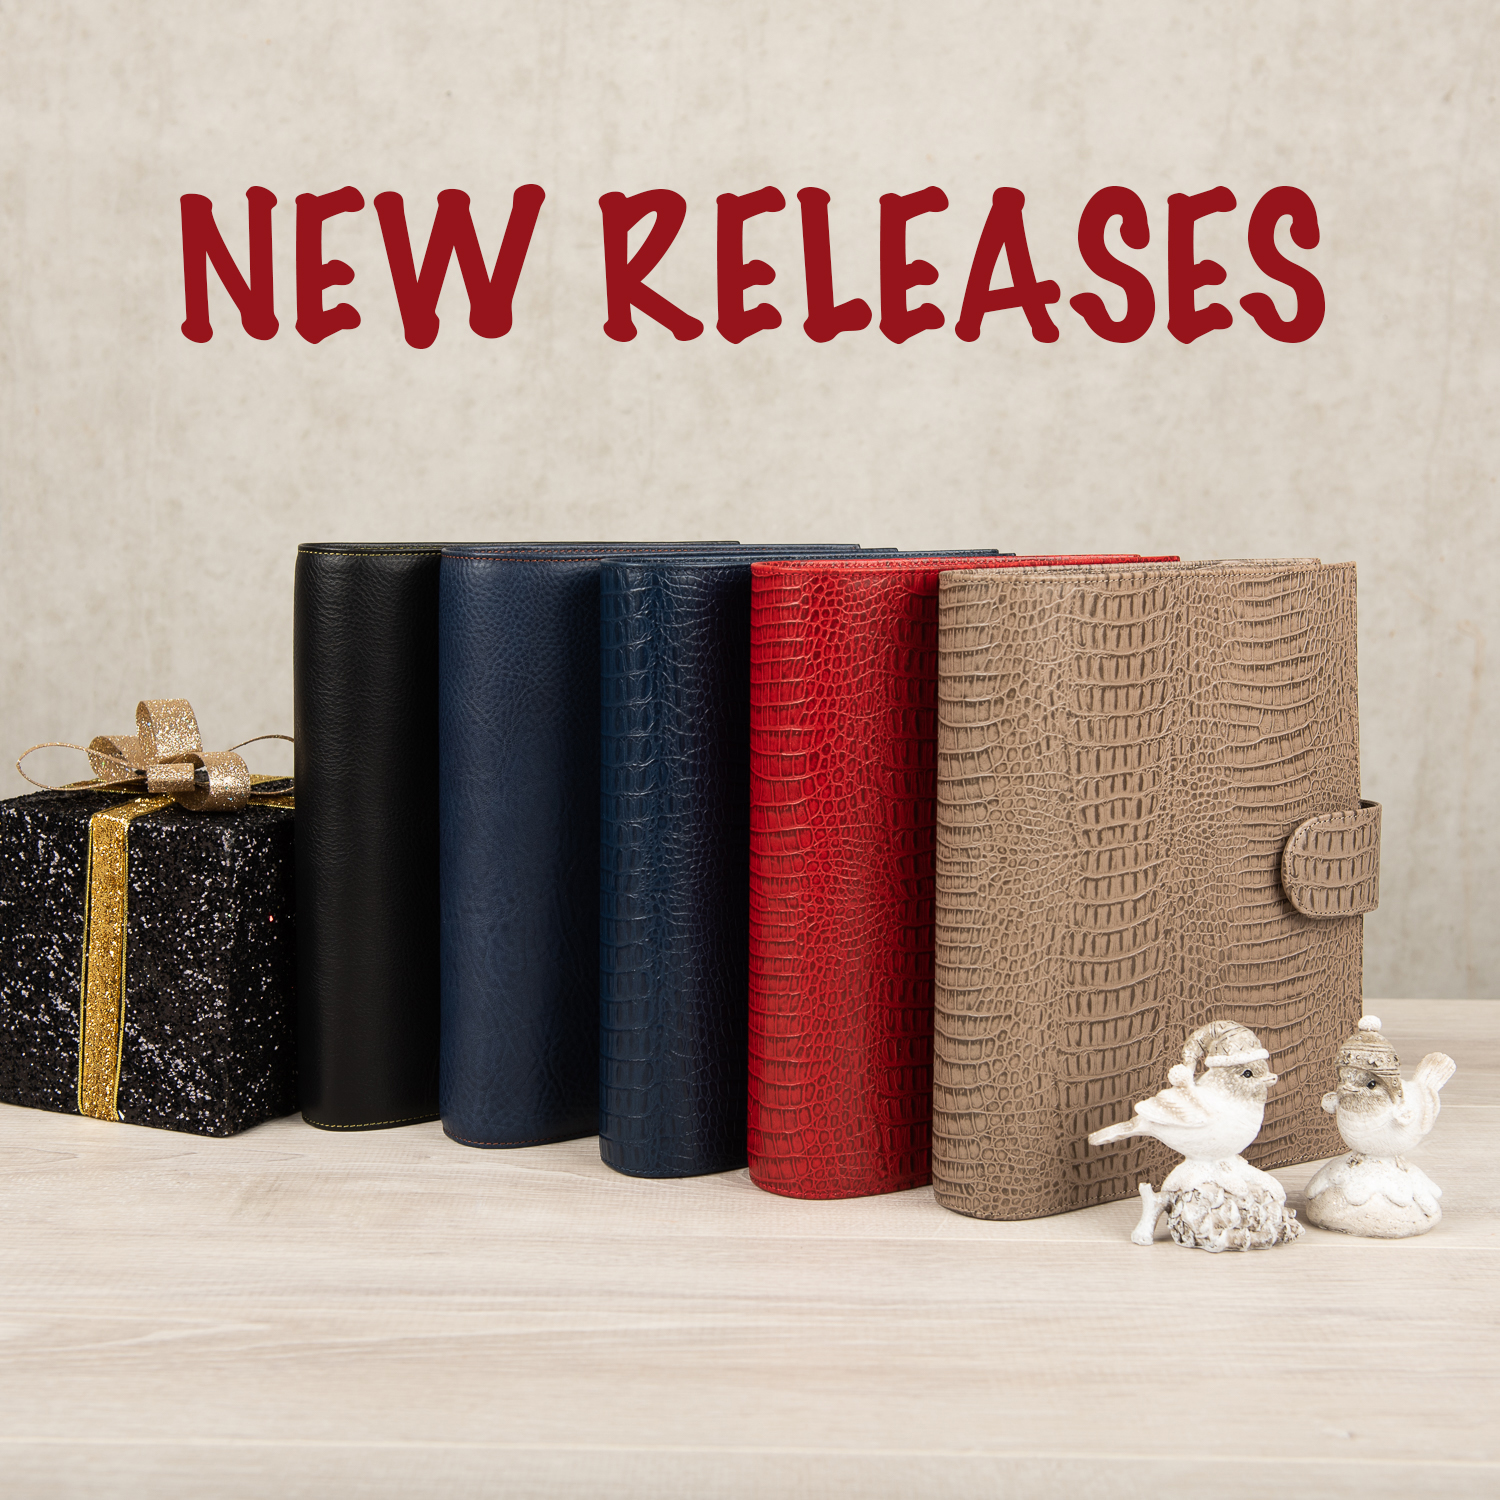 A5 Compagna restock & new releases!